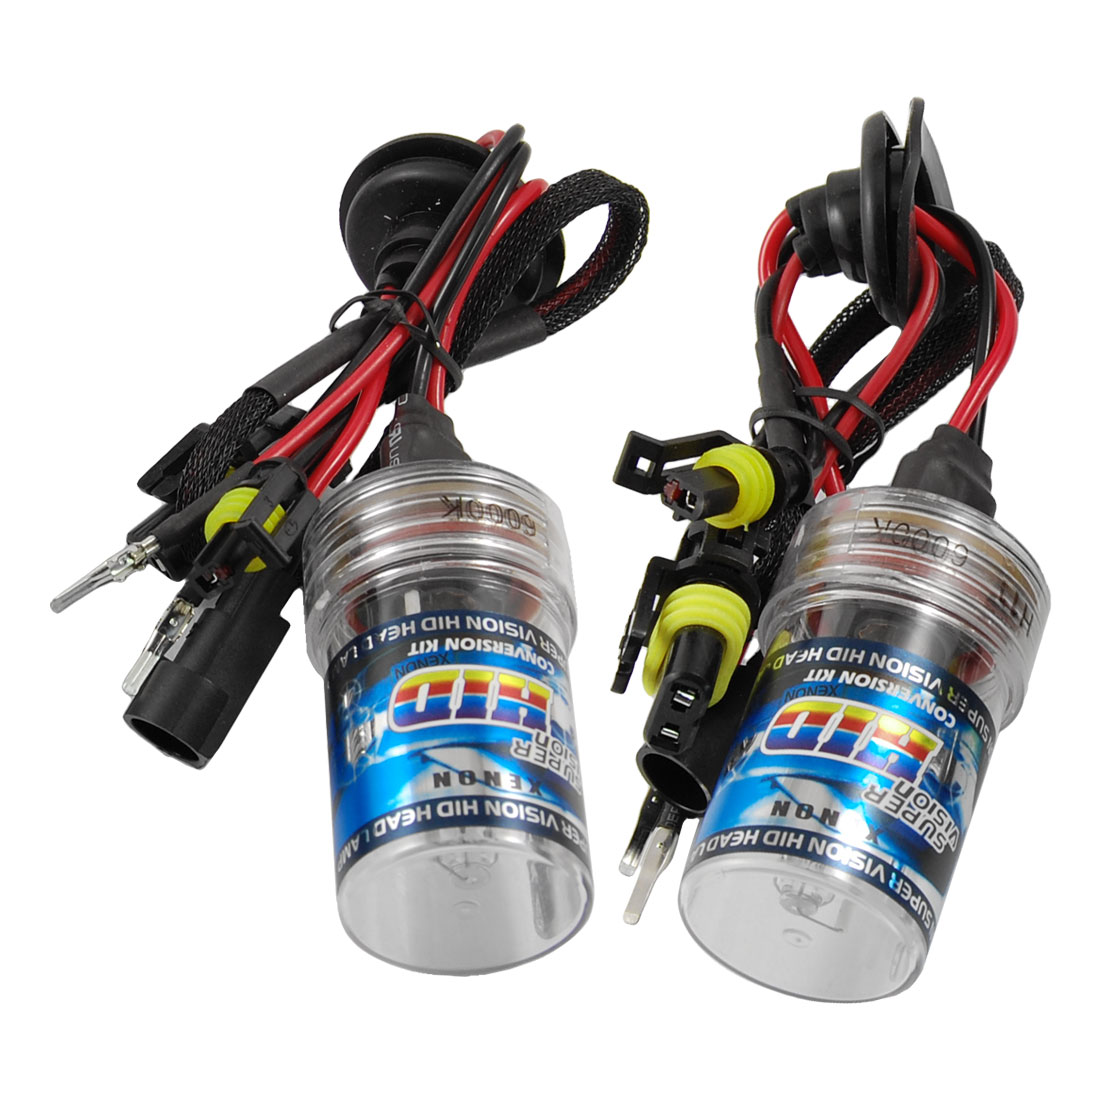 2 Pcs Vehicles 6000K 35W H11 Wired HID Xenon Headlight Bulbs DC 12V